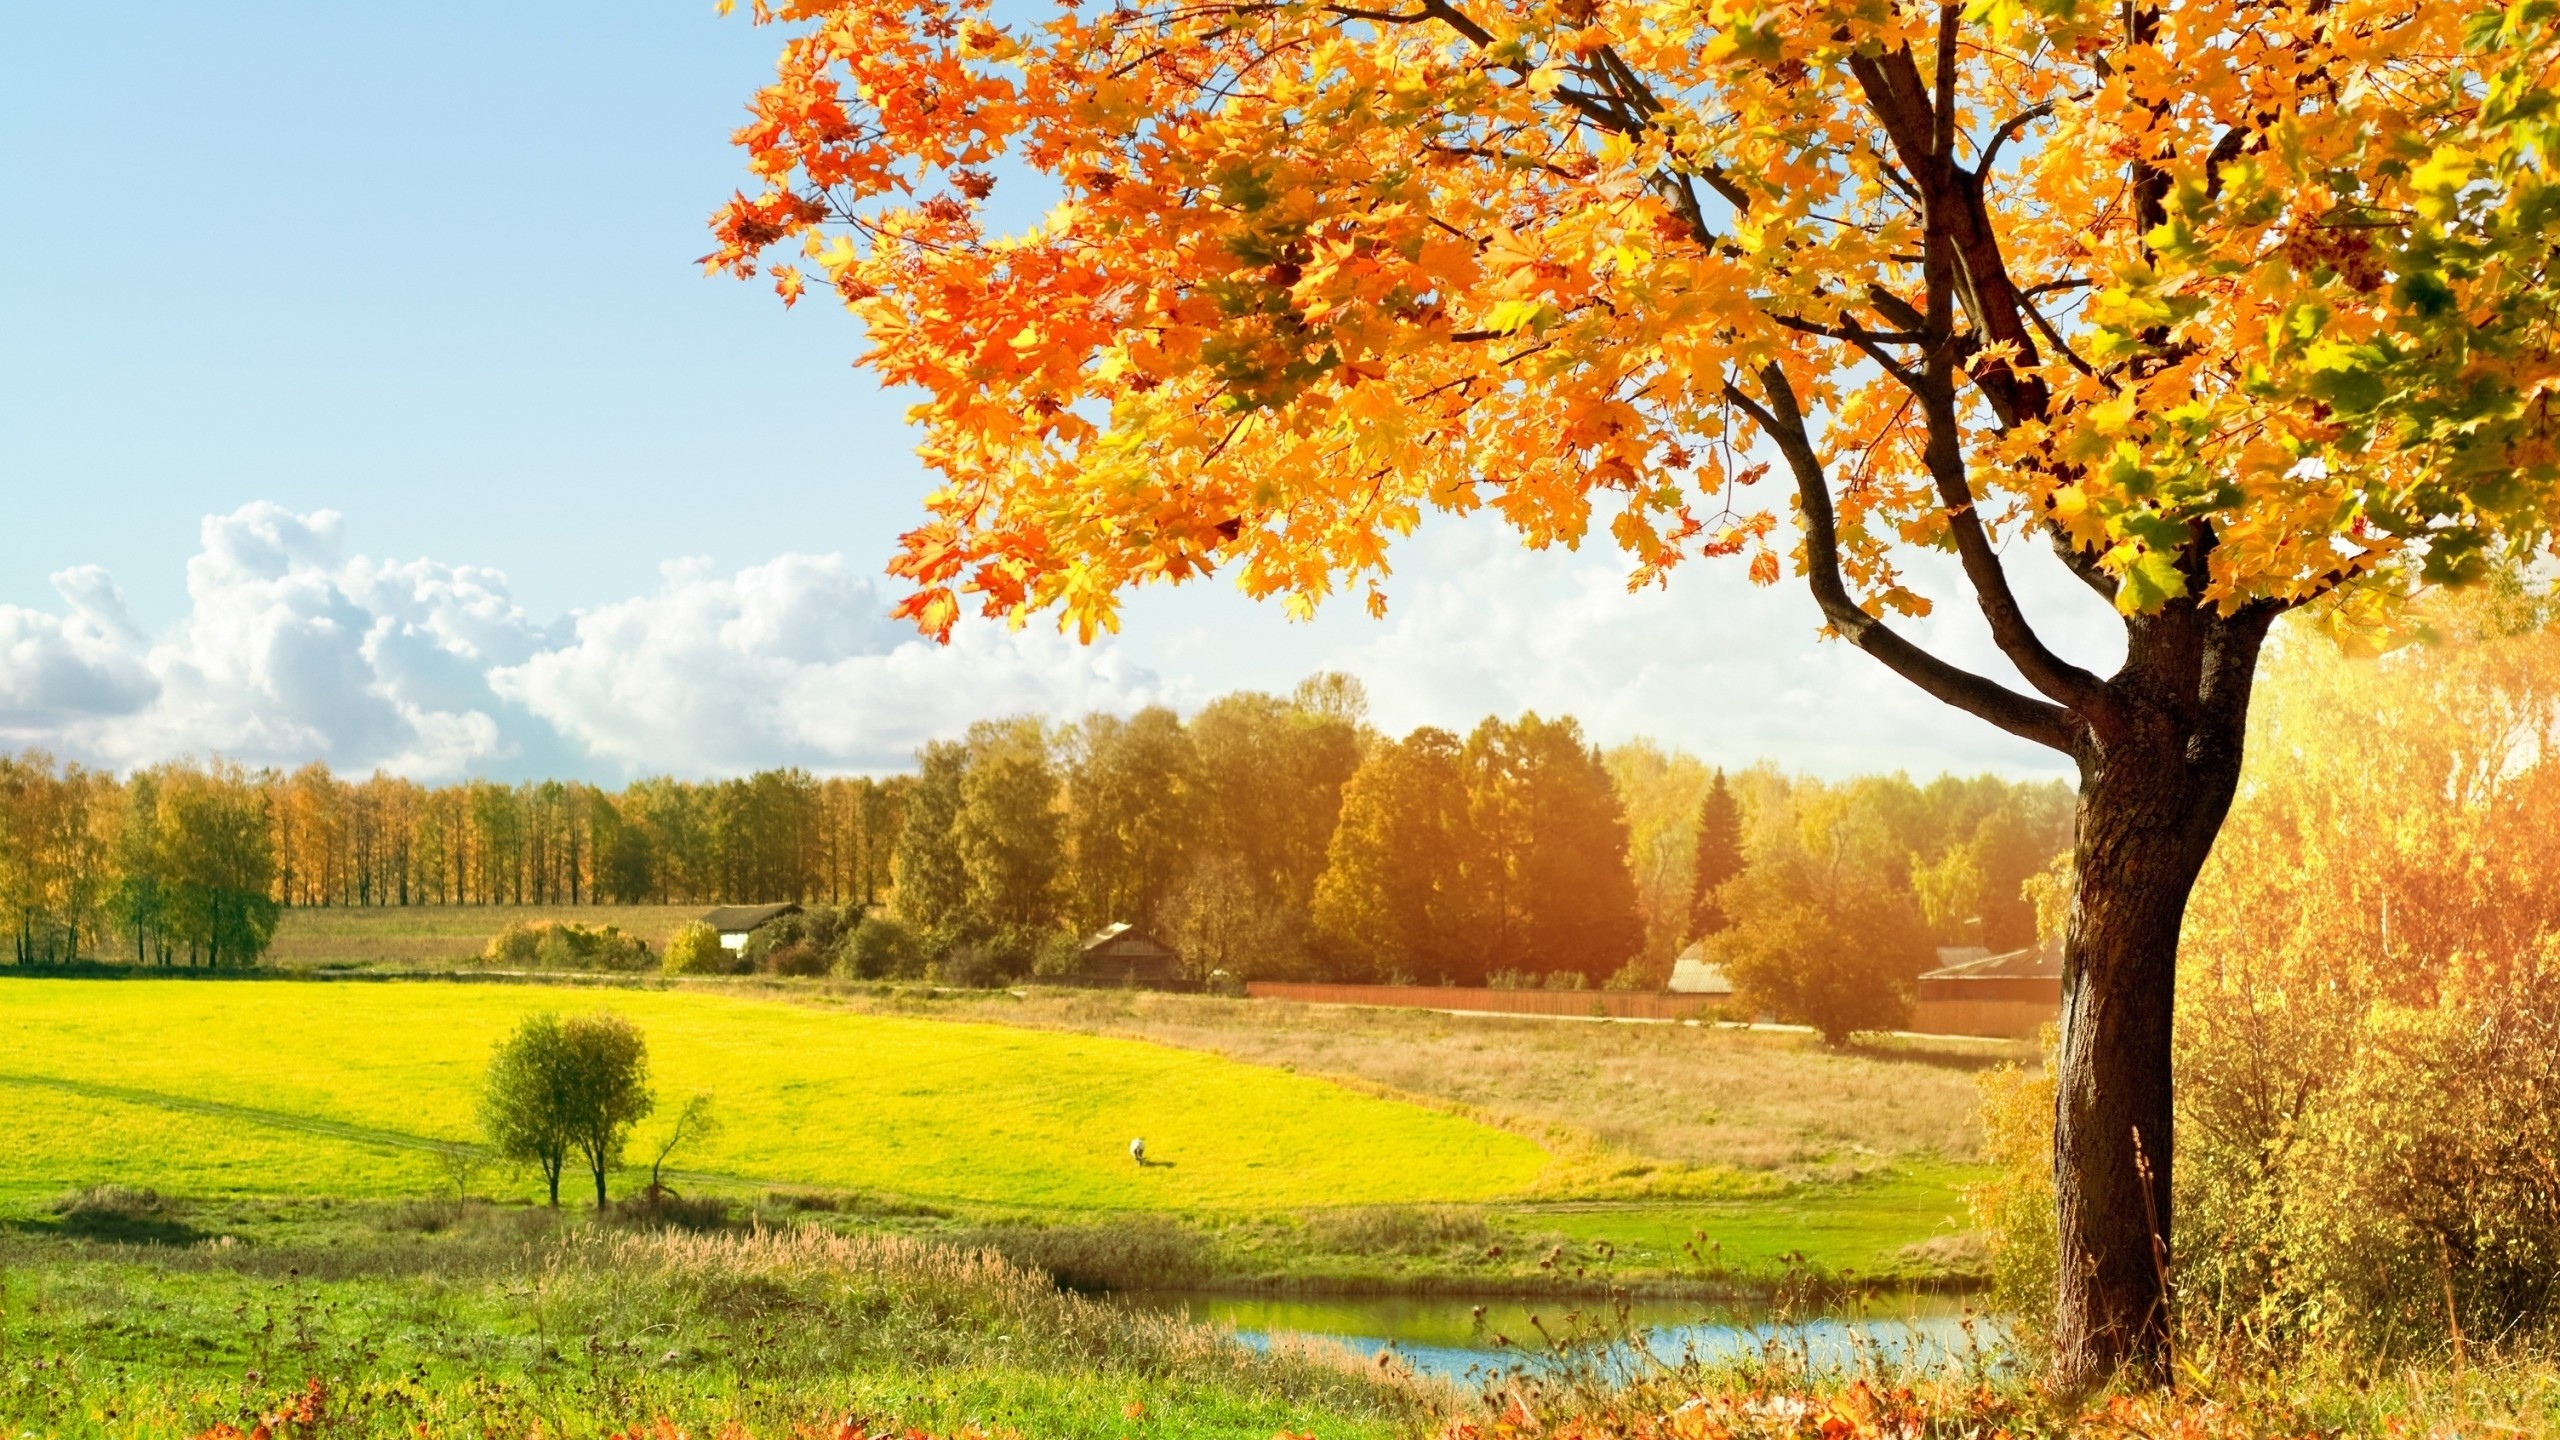 2560x1440 Beautiful Tree How To Set Wallpaper On Your Desktop Click The Download